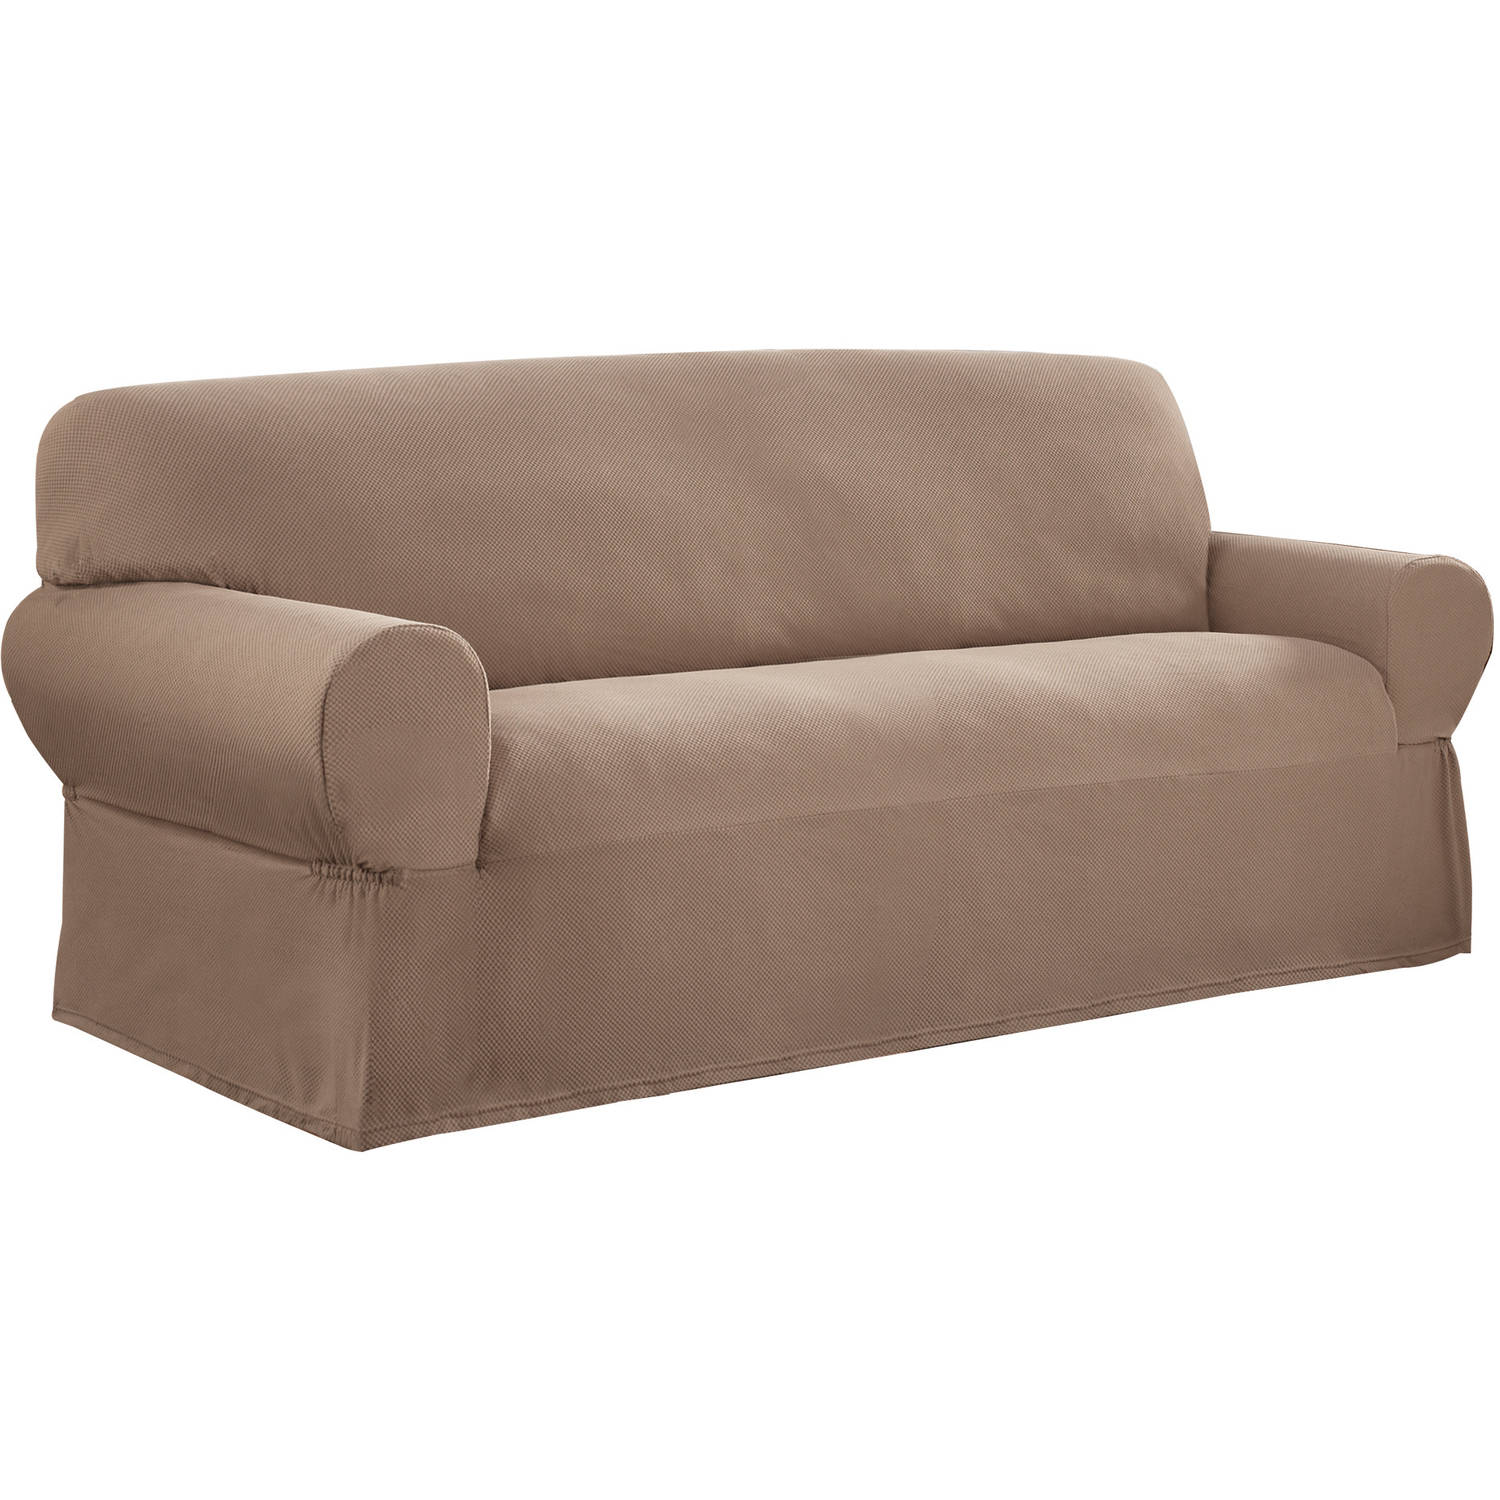 Elegant Mainstays 1-Piece Stretch Fabric Sofa Slipcover - Walmart.com stretch sofa slipcover